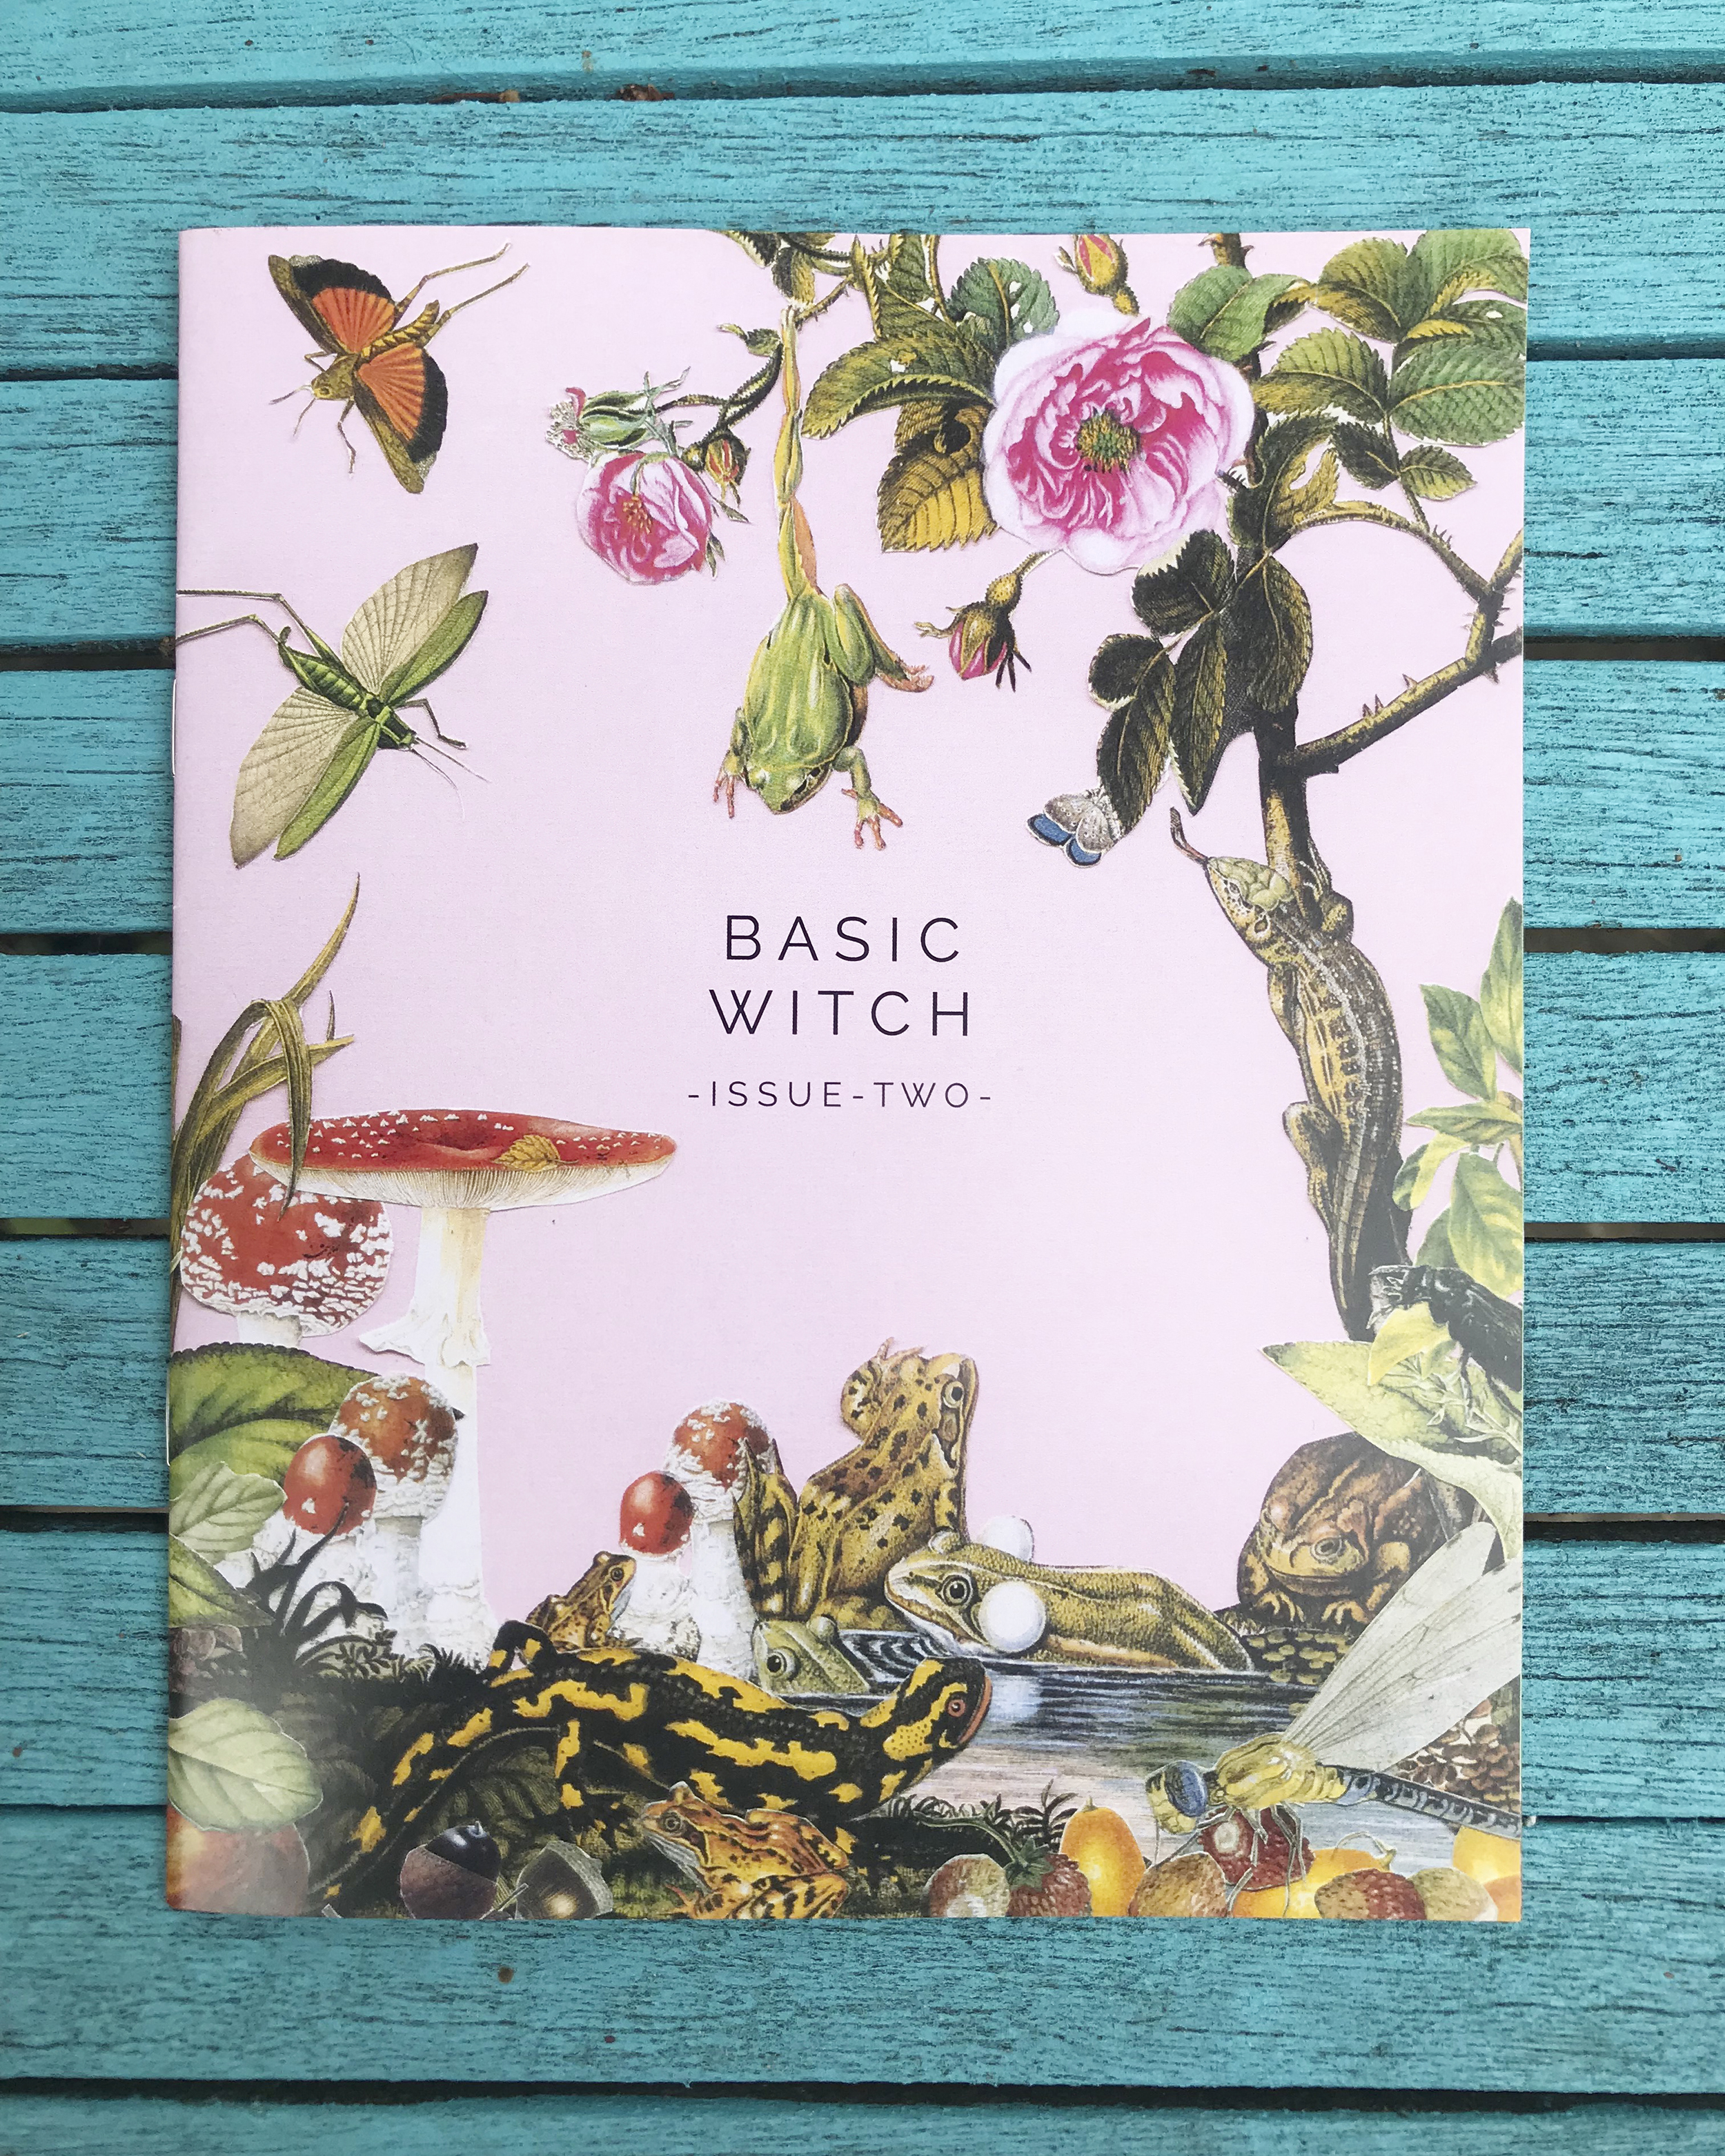 Basic Witch - Issue Two   Basic Witch is satirical zine about witchcraft for millennials. This thirteen page book of shadows, produced seasonally by Teän Roberts and Cormac Cleary, takes the tropes of traditional lifestyle magazines - how to's, beauty tips, recipes, travel writing - and adapts them in the service of the modern witch. Issue Two features a séance for contacting your tinder ghosts, dating advice from Agatha - our resident Hagony Aunt - and instructions for cleansing your home of spirits, and much more.